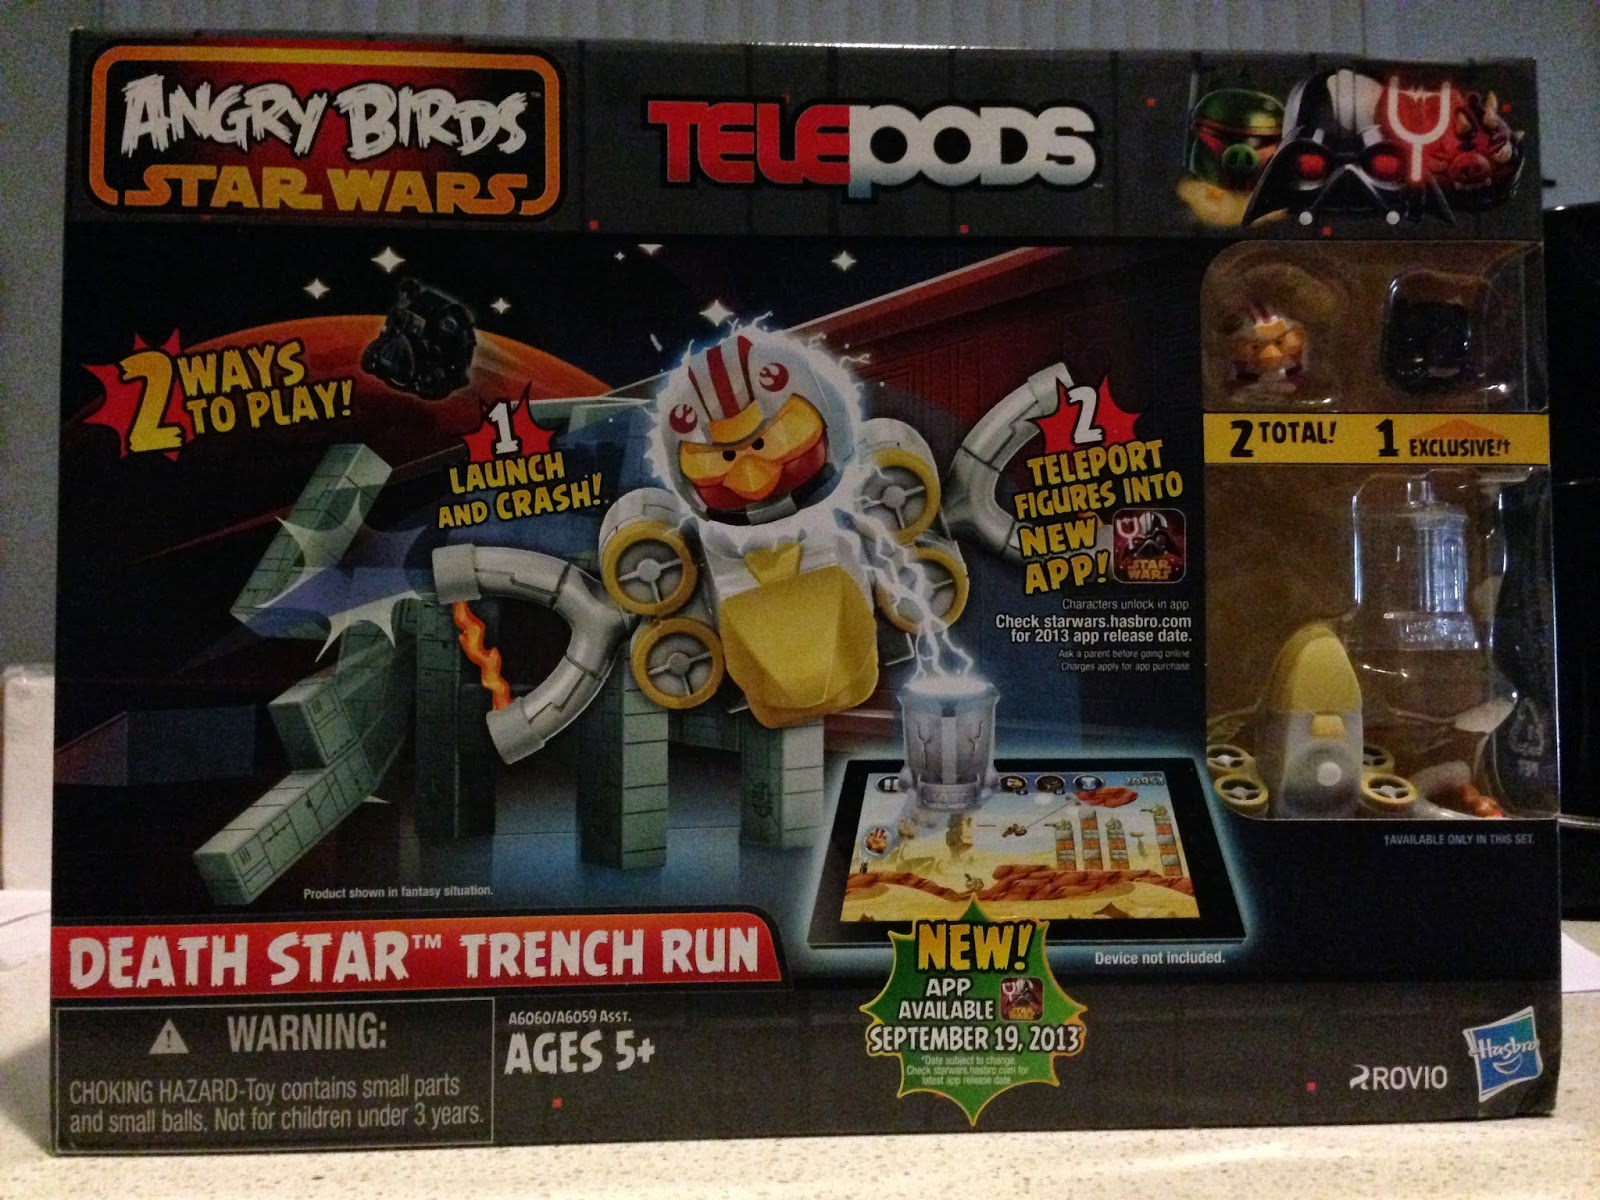 Angry Birds Star Wars Toys : Review of angry birds star wars toys from hasbro lille punkin